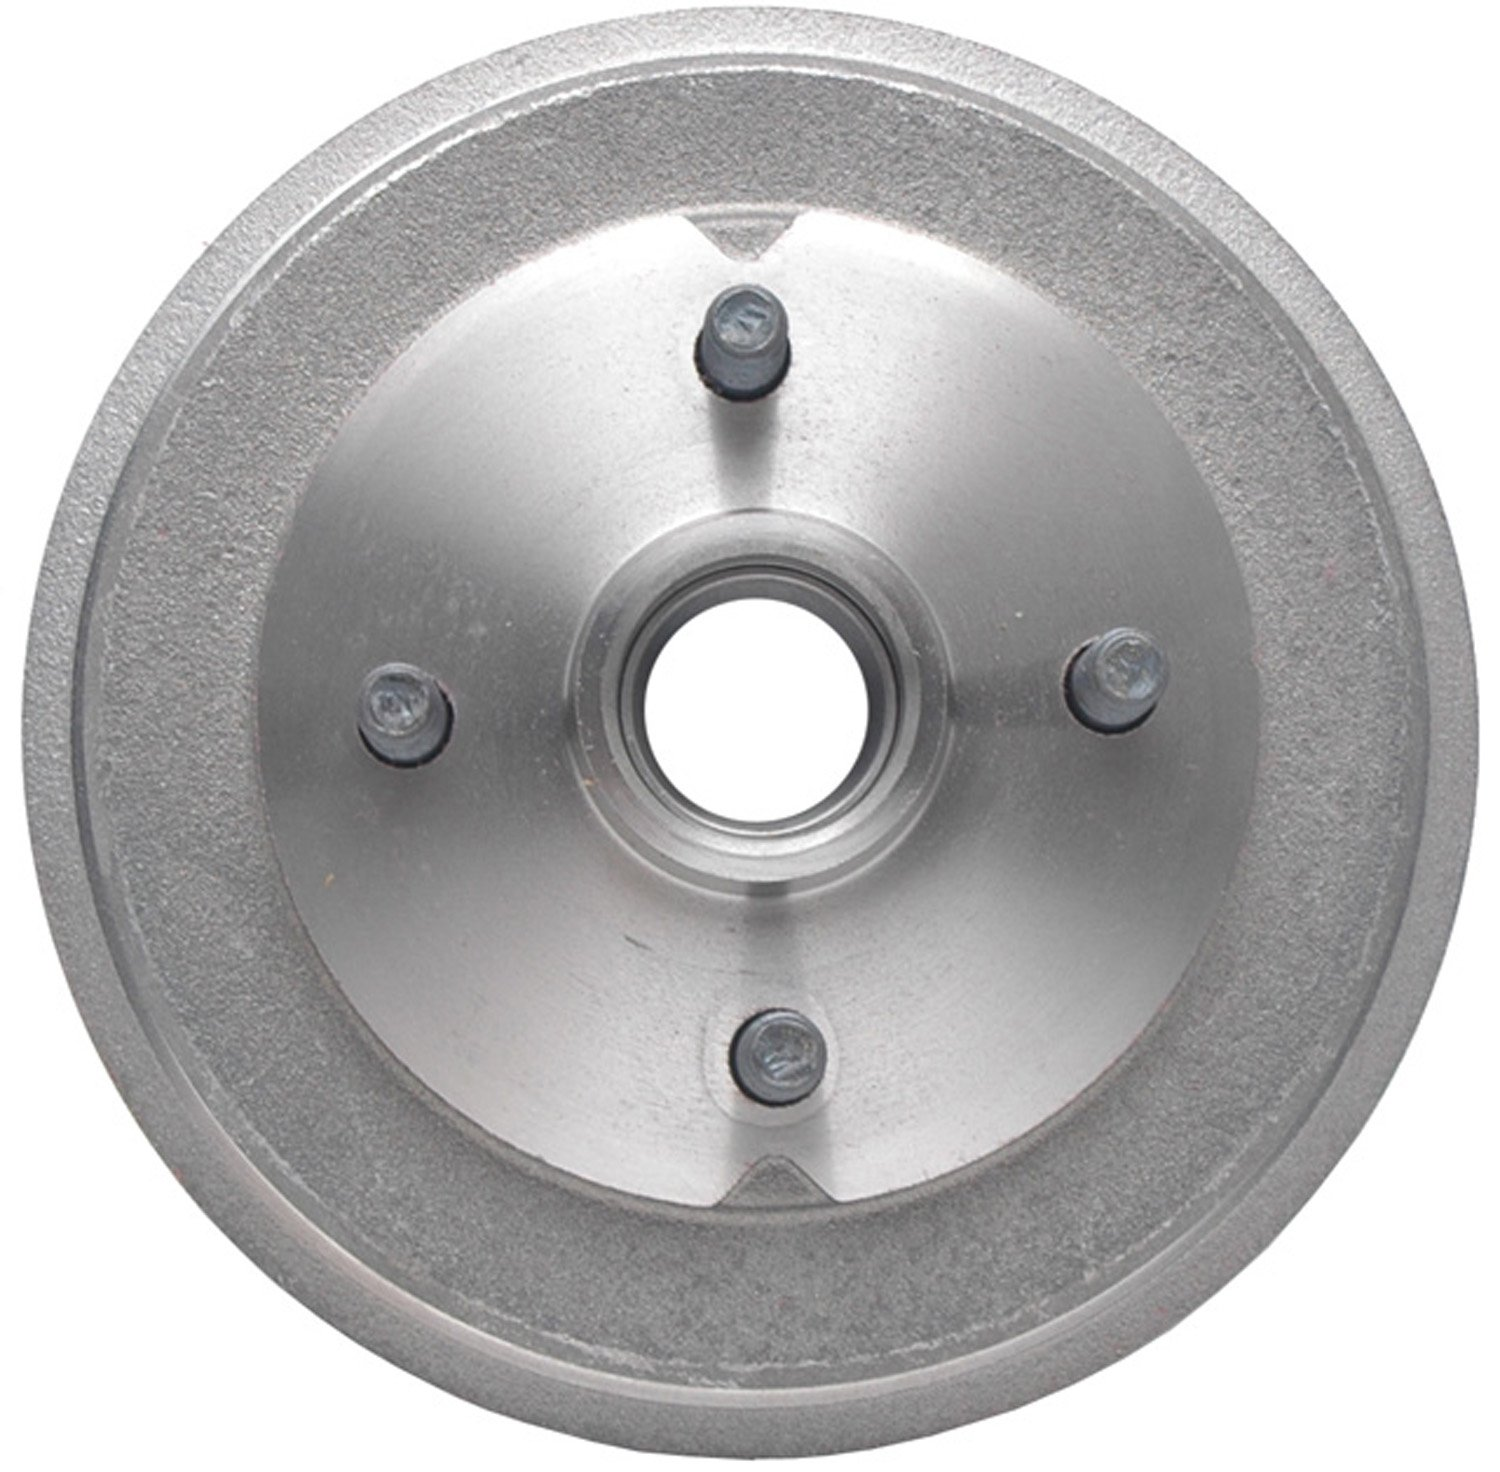 ACDelco 18B289 Professional Rear Brake Drum Assembly